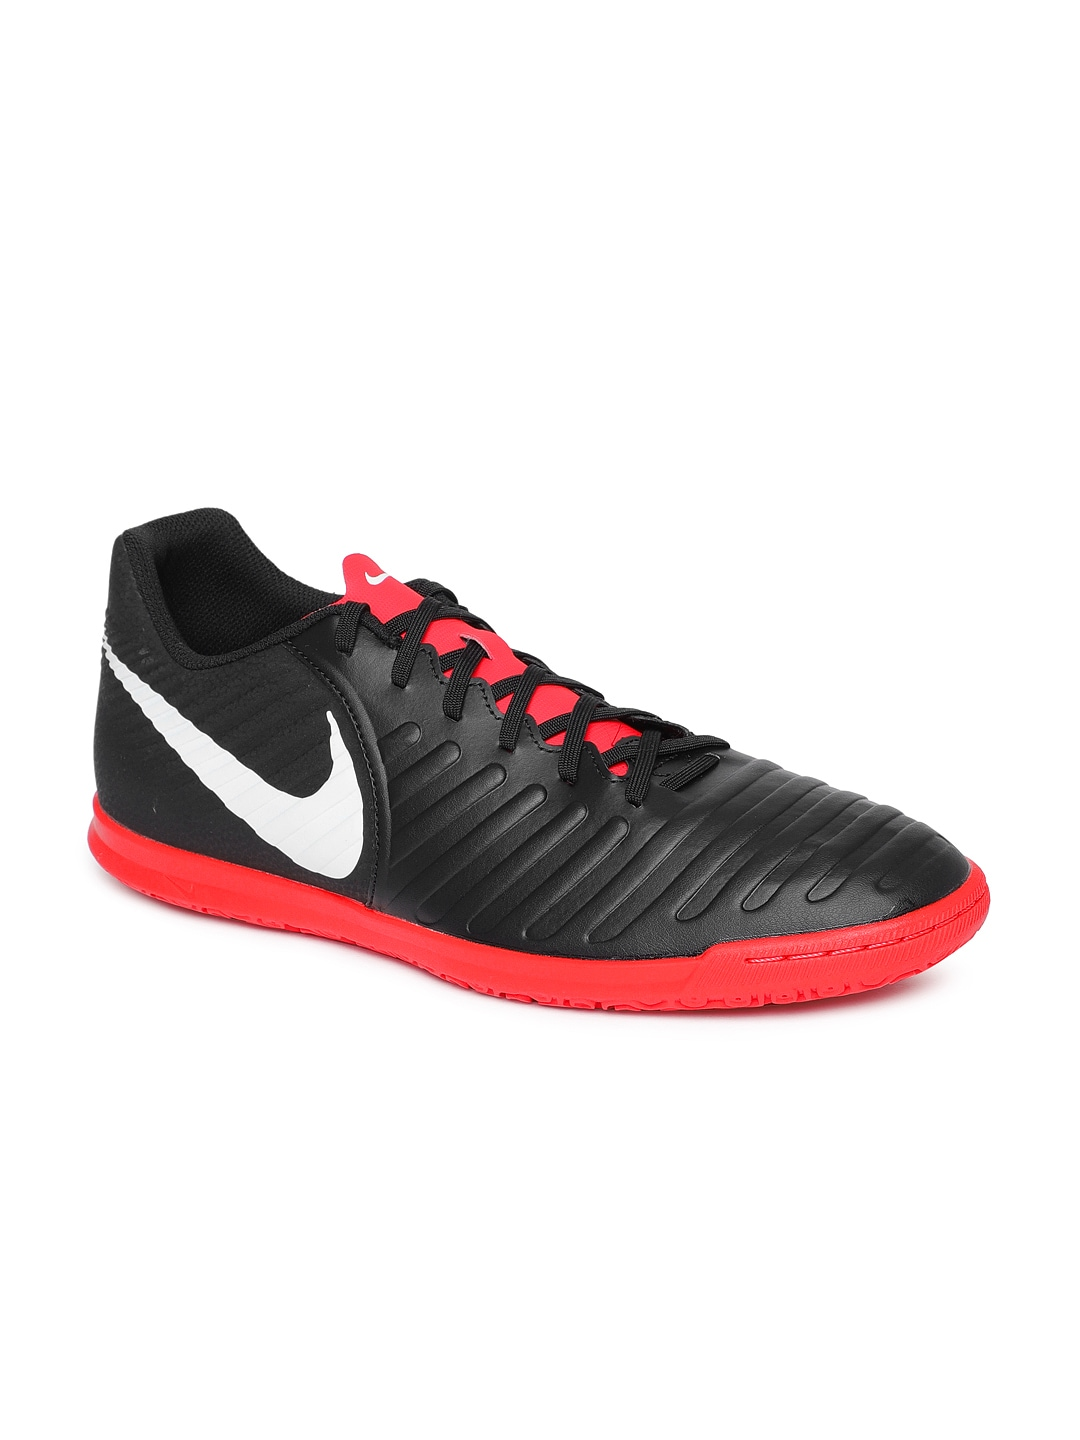 Nike Sport Shoe - Buy Nike Sport Shoes At Best Price Online  43bc4e0f9d74